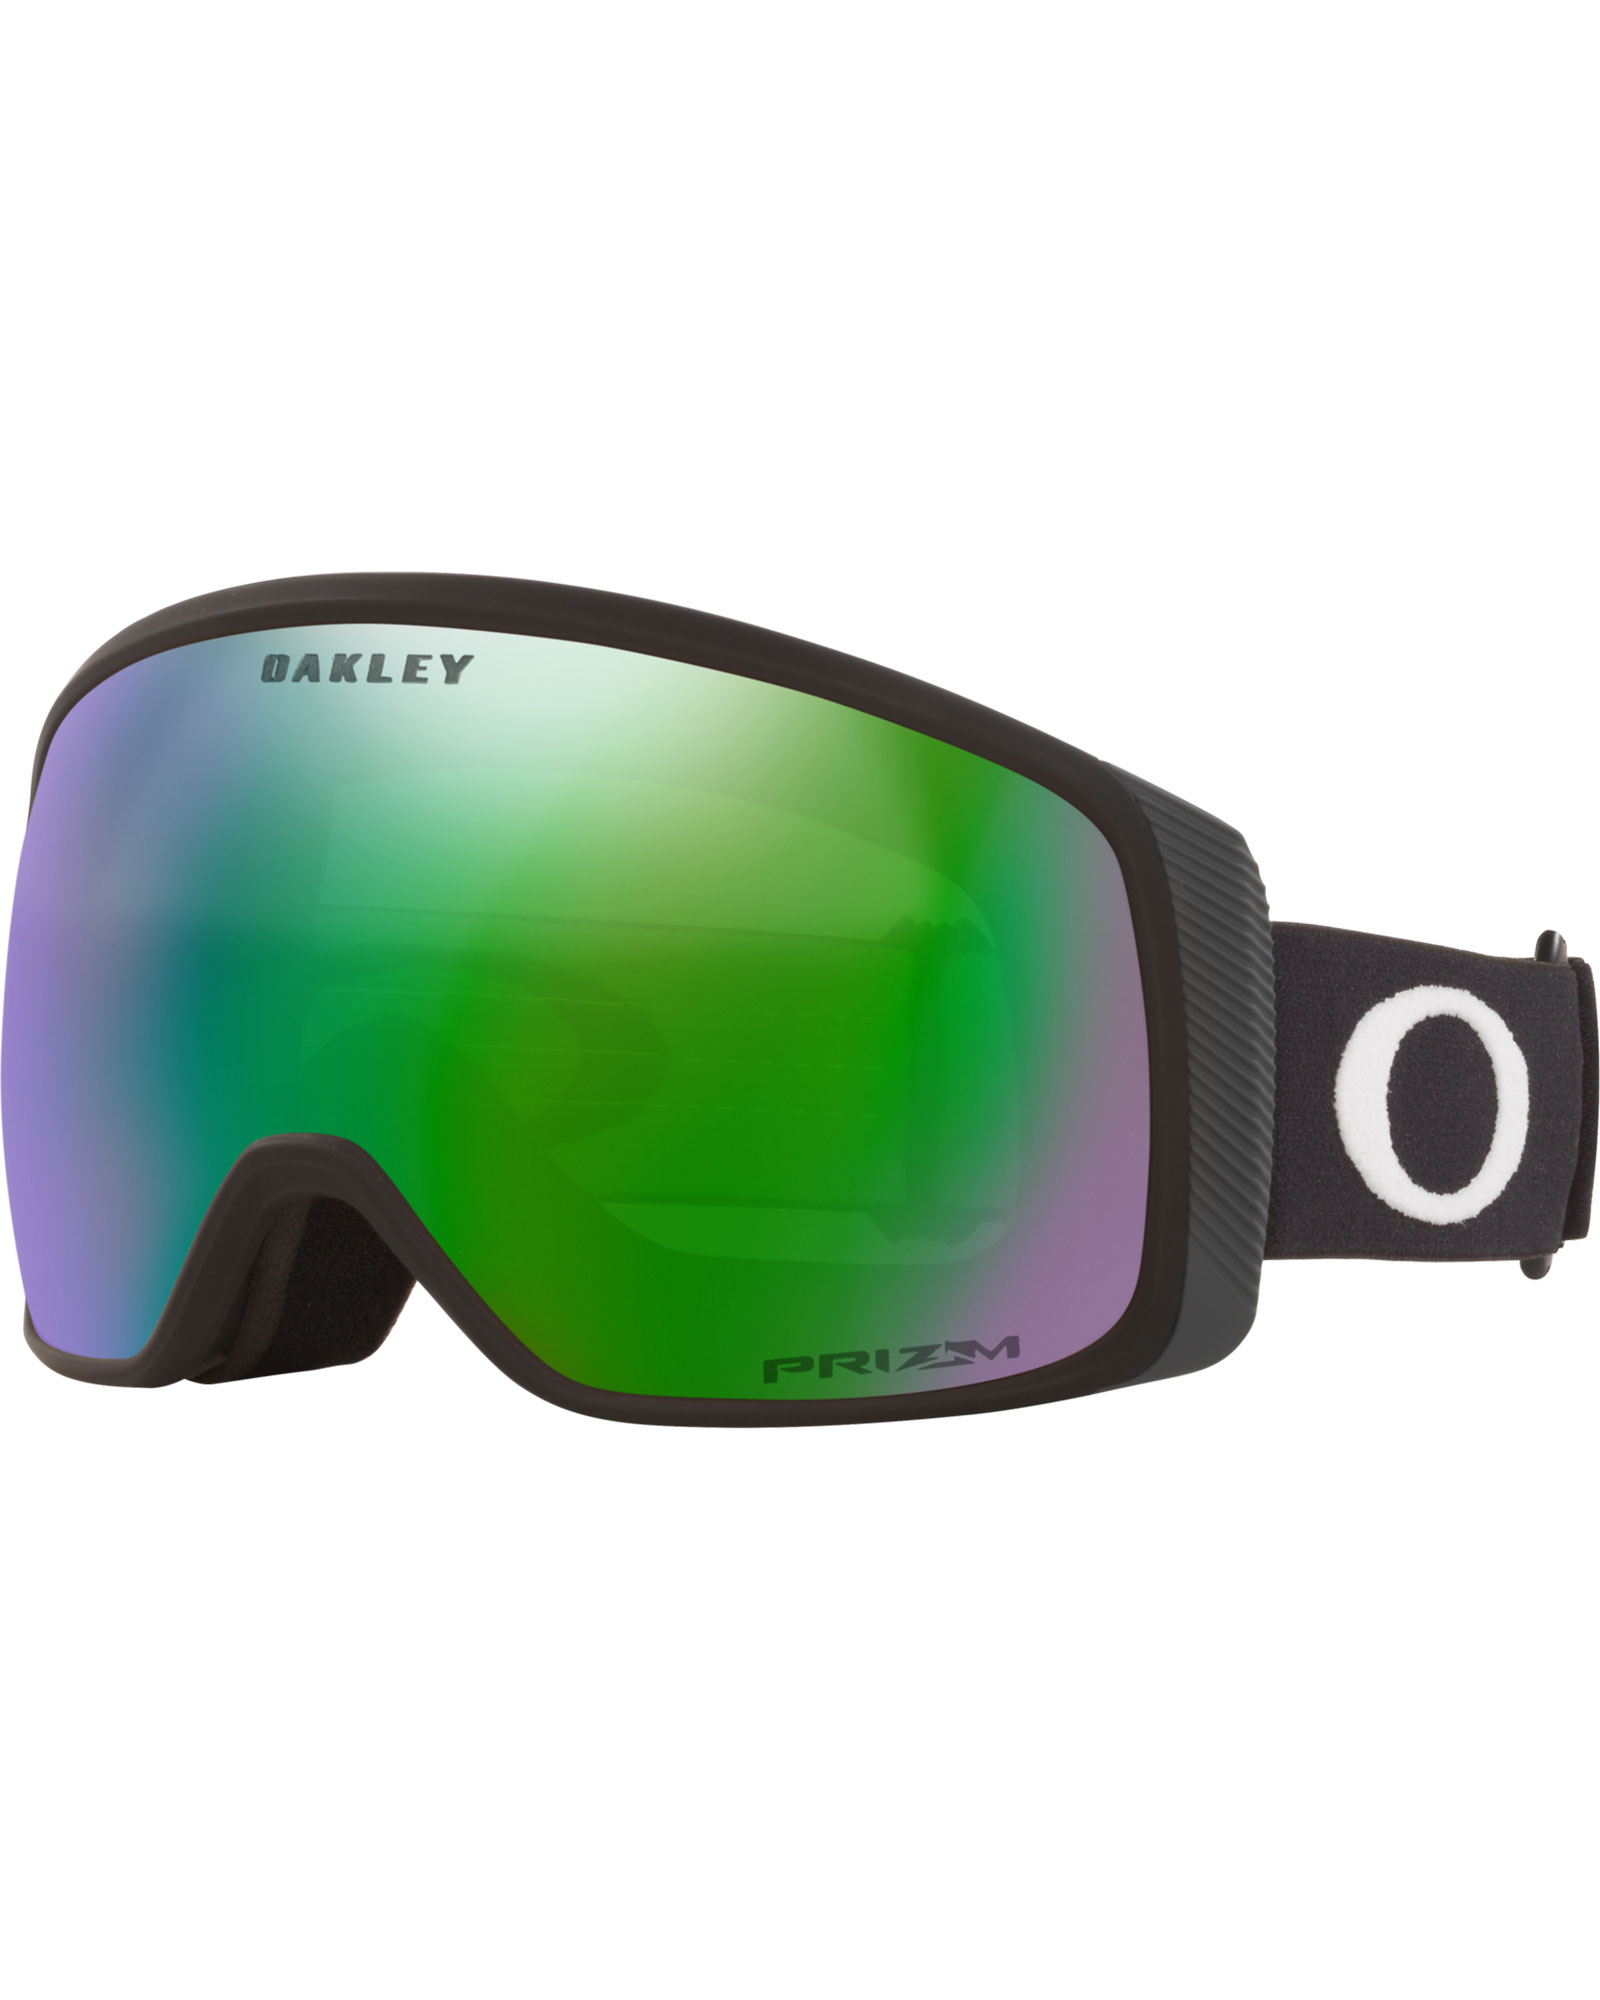 Oakley Flight Tracker XM Matte Black / Prizm Jade Iridium Goggles 2020 / 2021 0